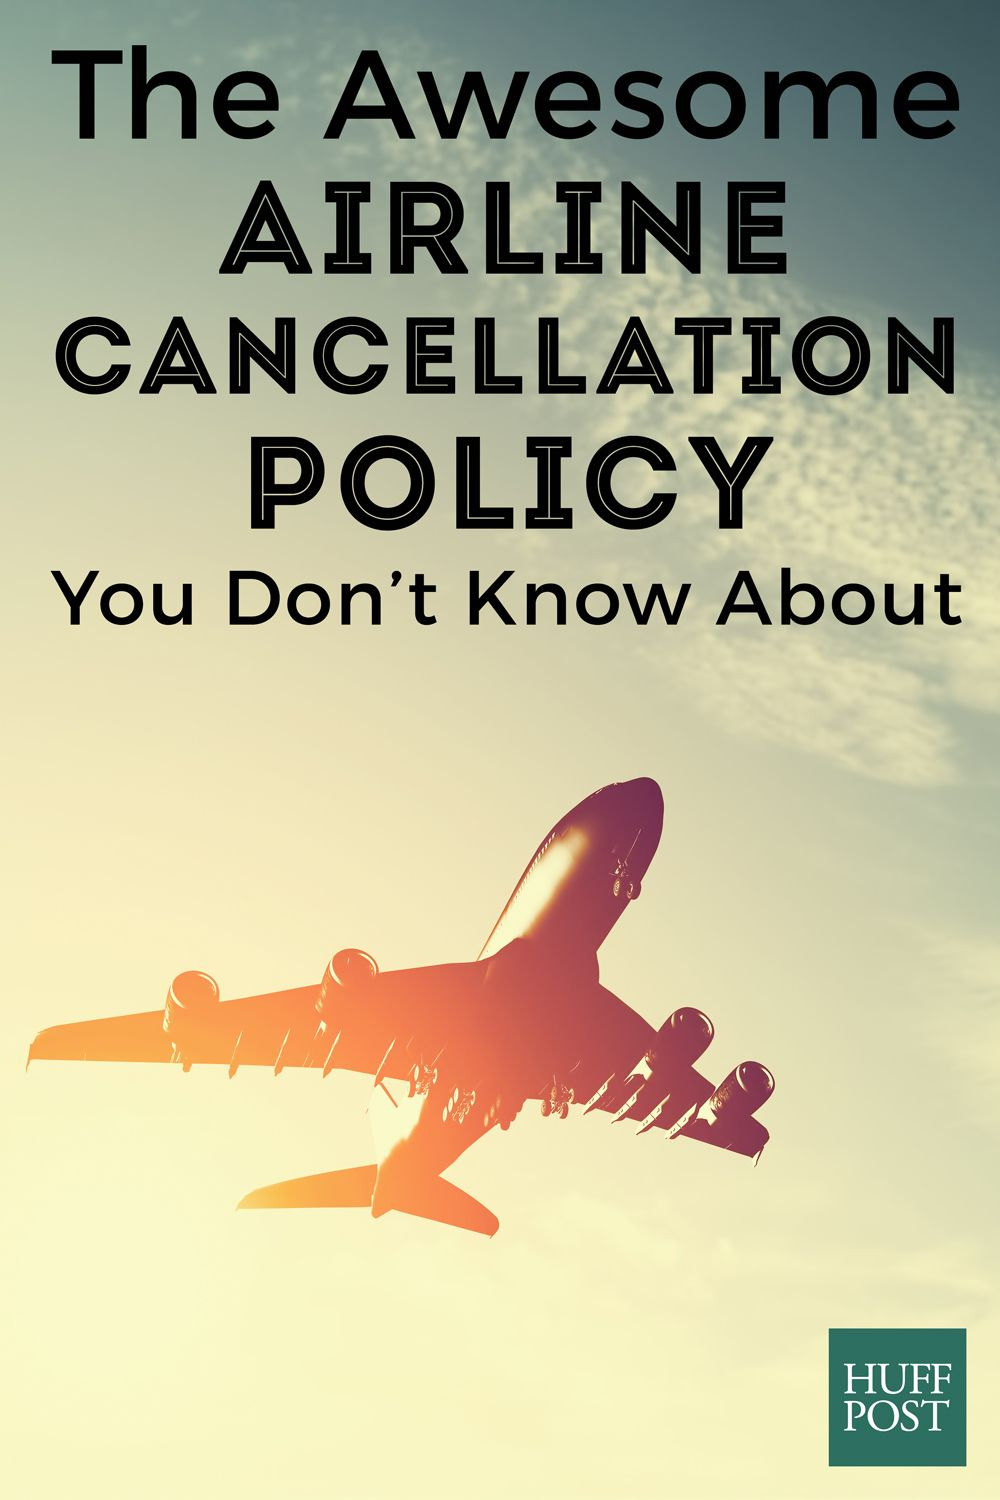 The Awesome Airline Cancellation Policy You Don't Know